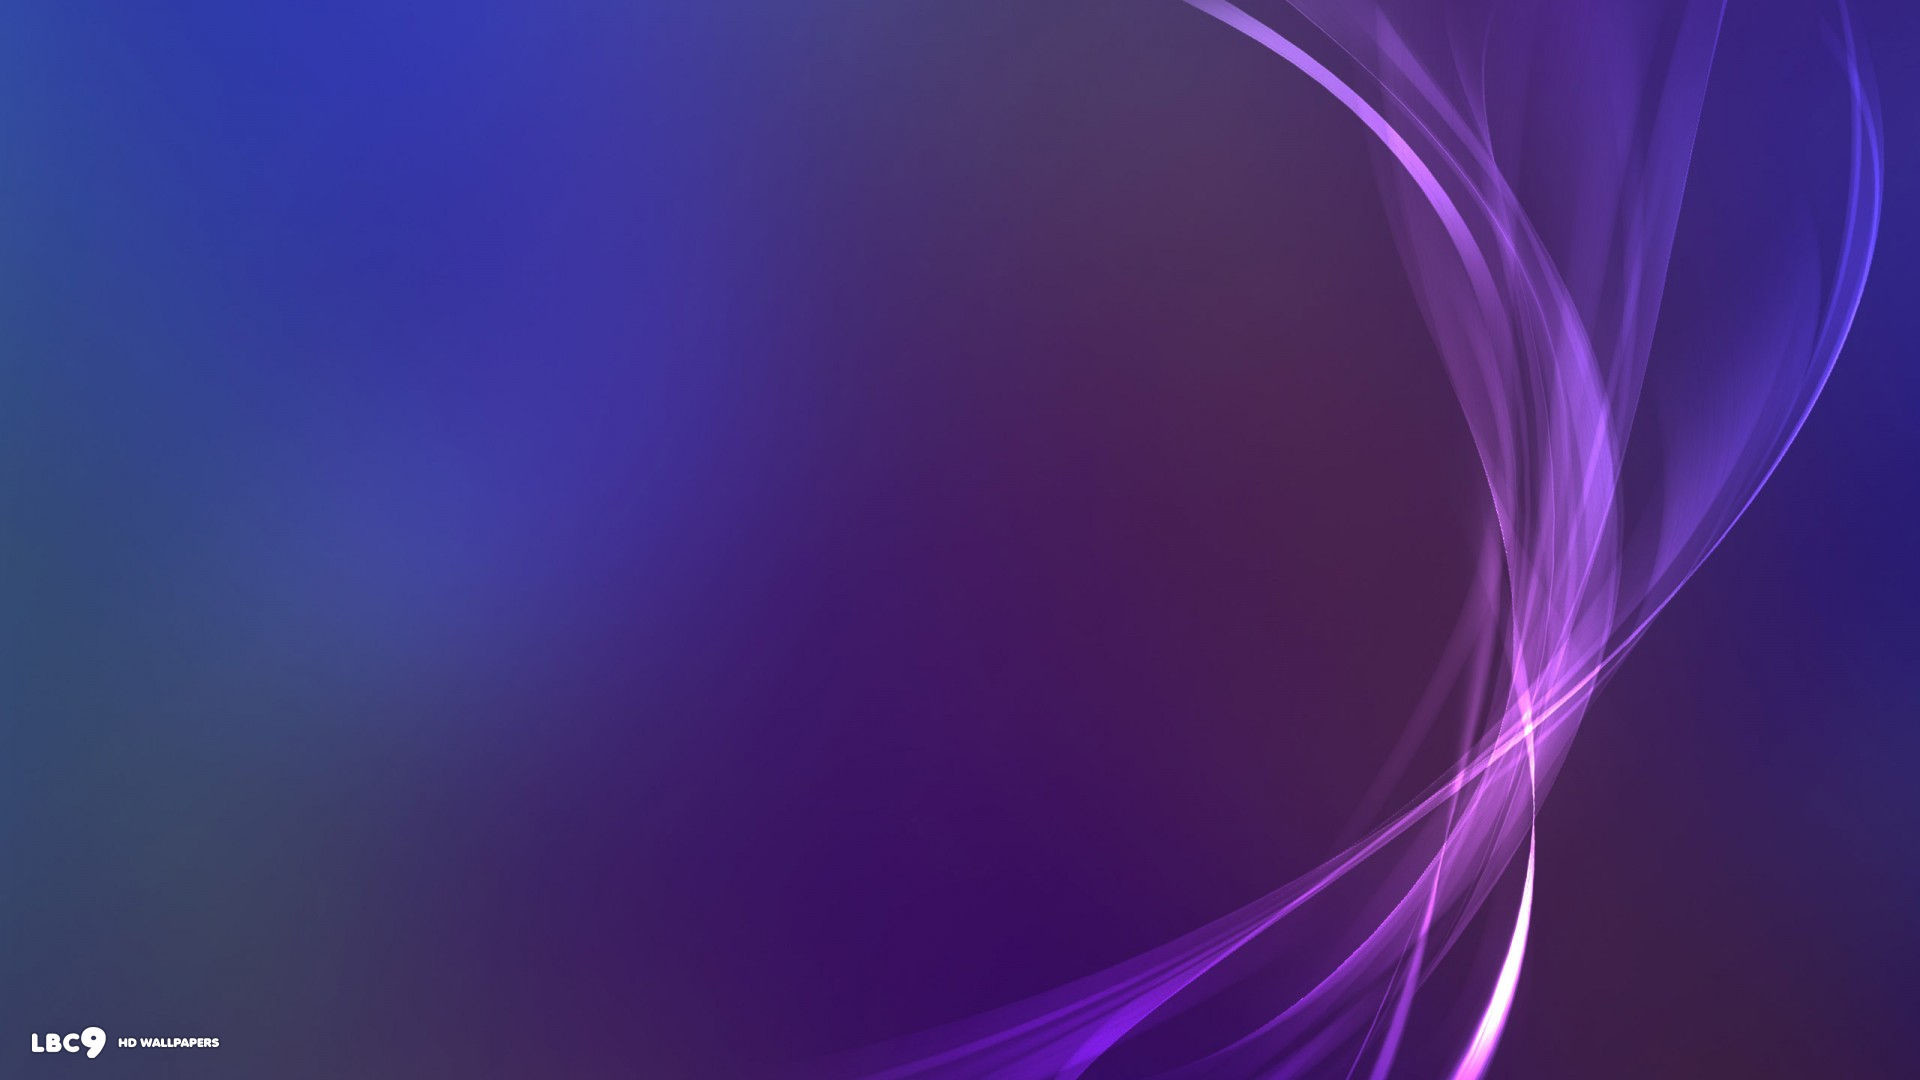 purple abstract lines wallpaper 4/11 | abstract hd backgrounds